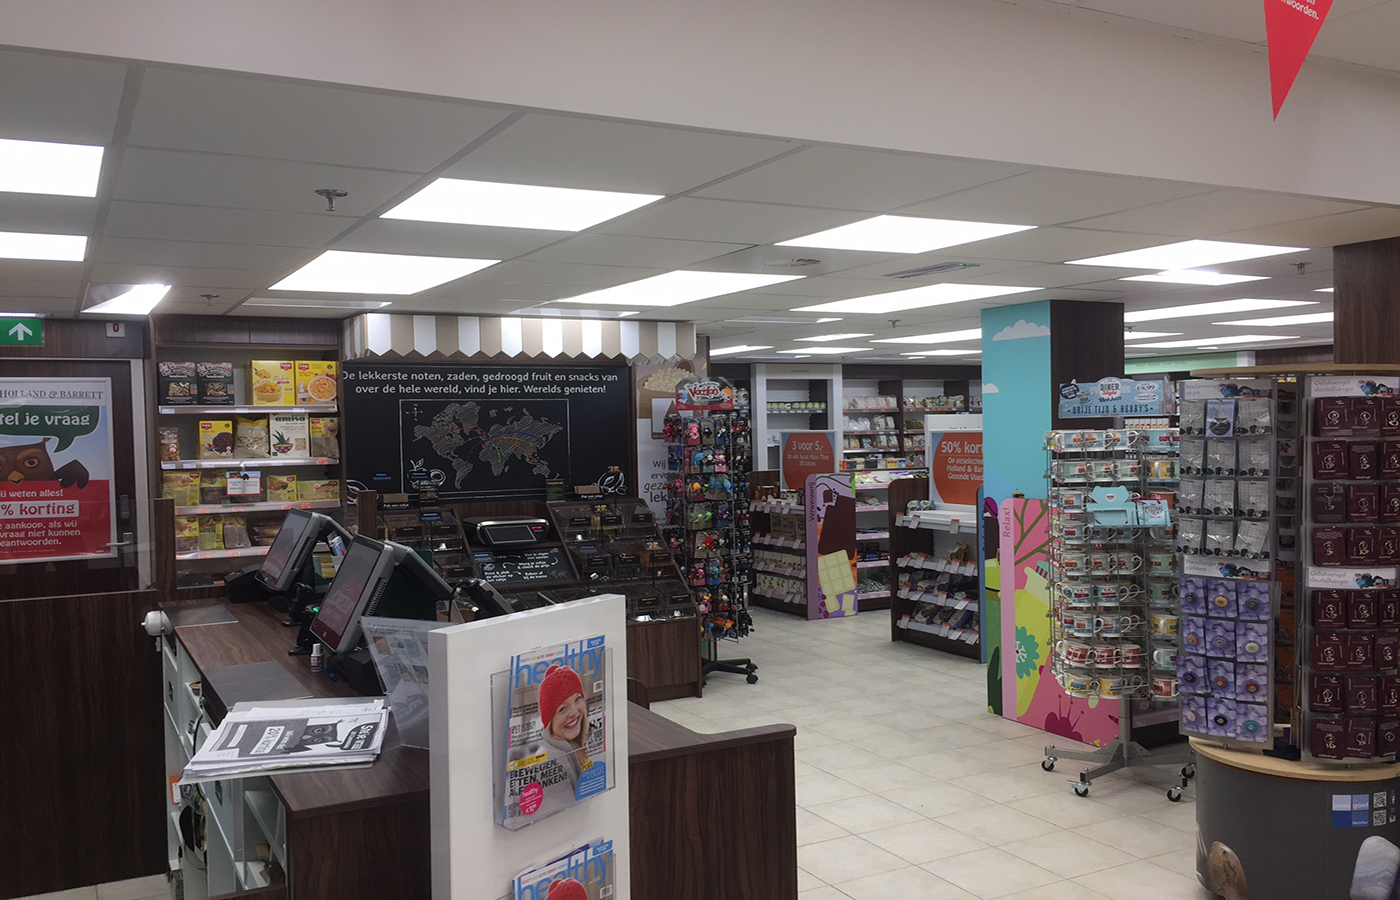 LEDSign project: Holland&Barrett